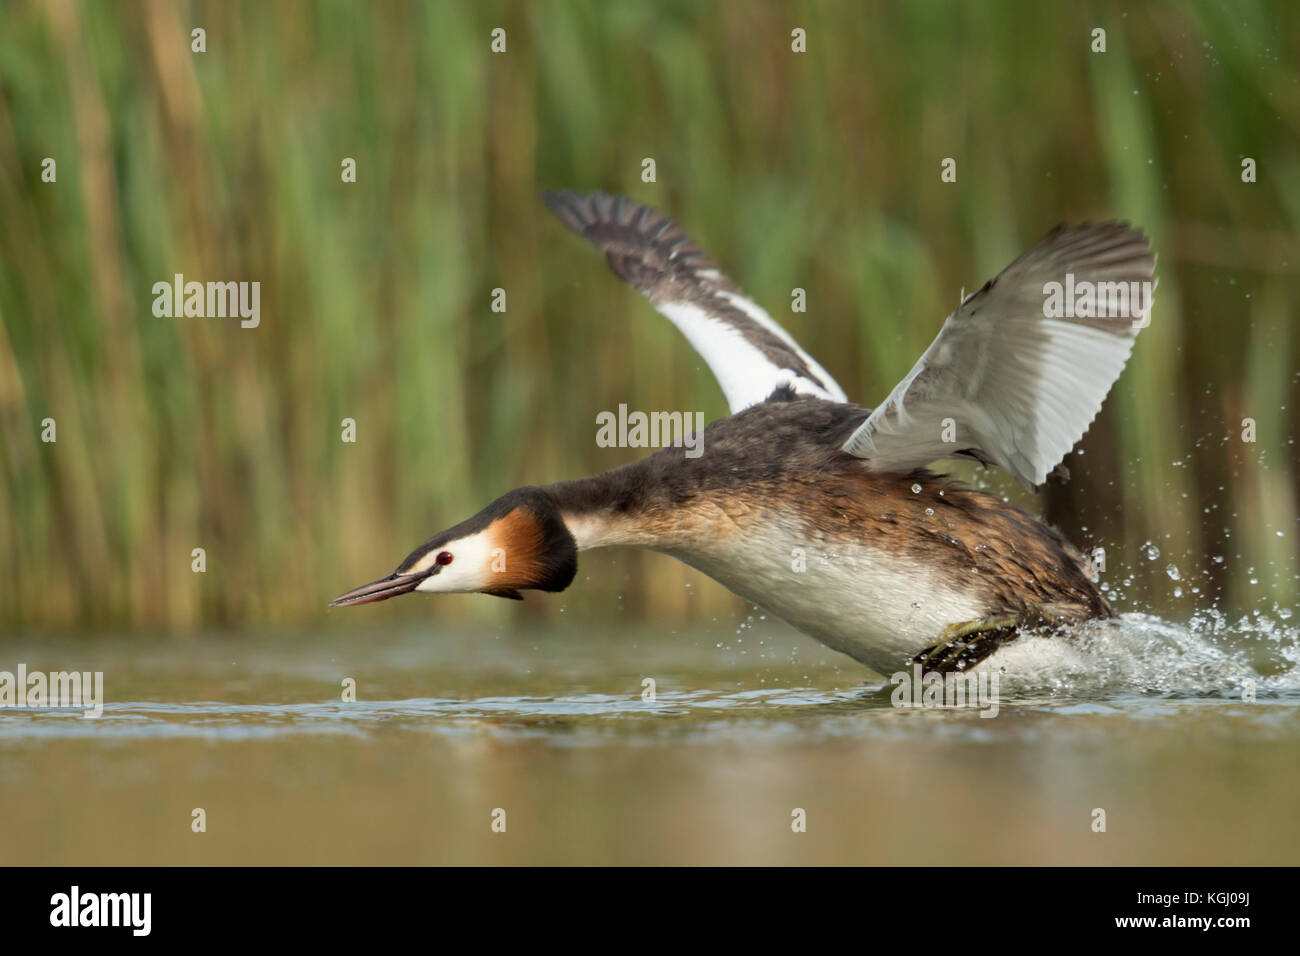 Great Crested Grebe / Haubentaucher ( Podiceps cristatus ) in a hurry, flapping its wings, taking off from a stretch - Stock Image